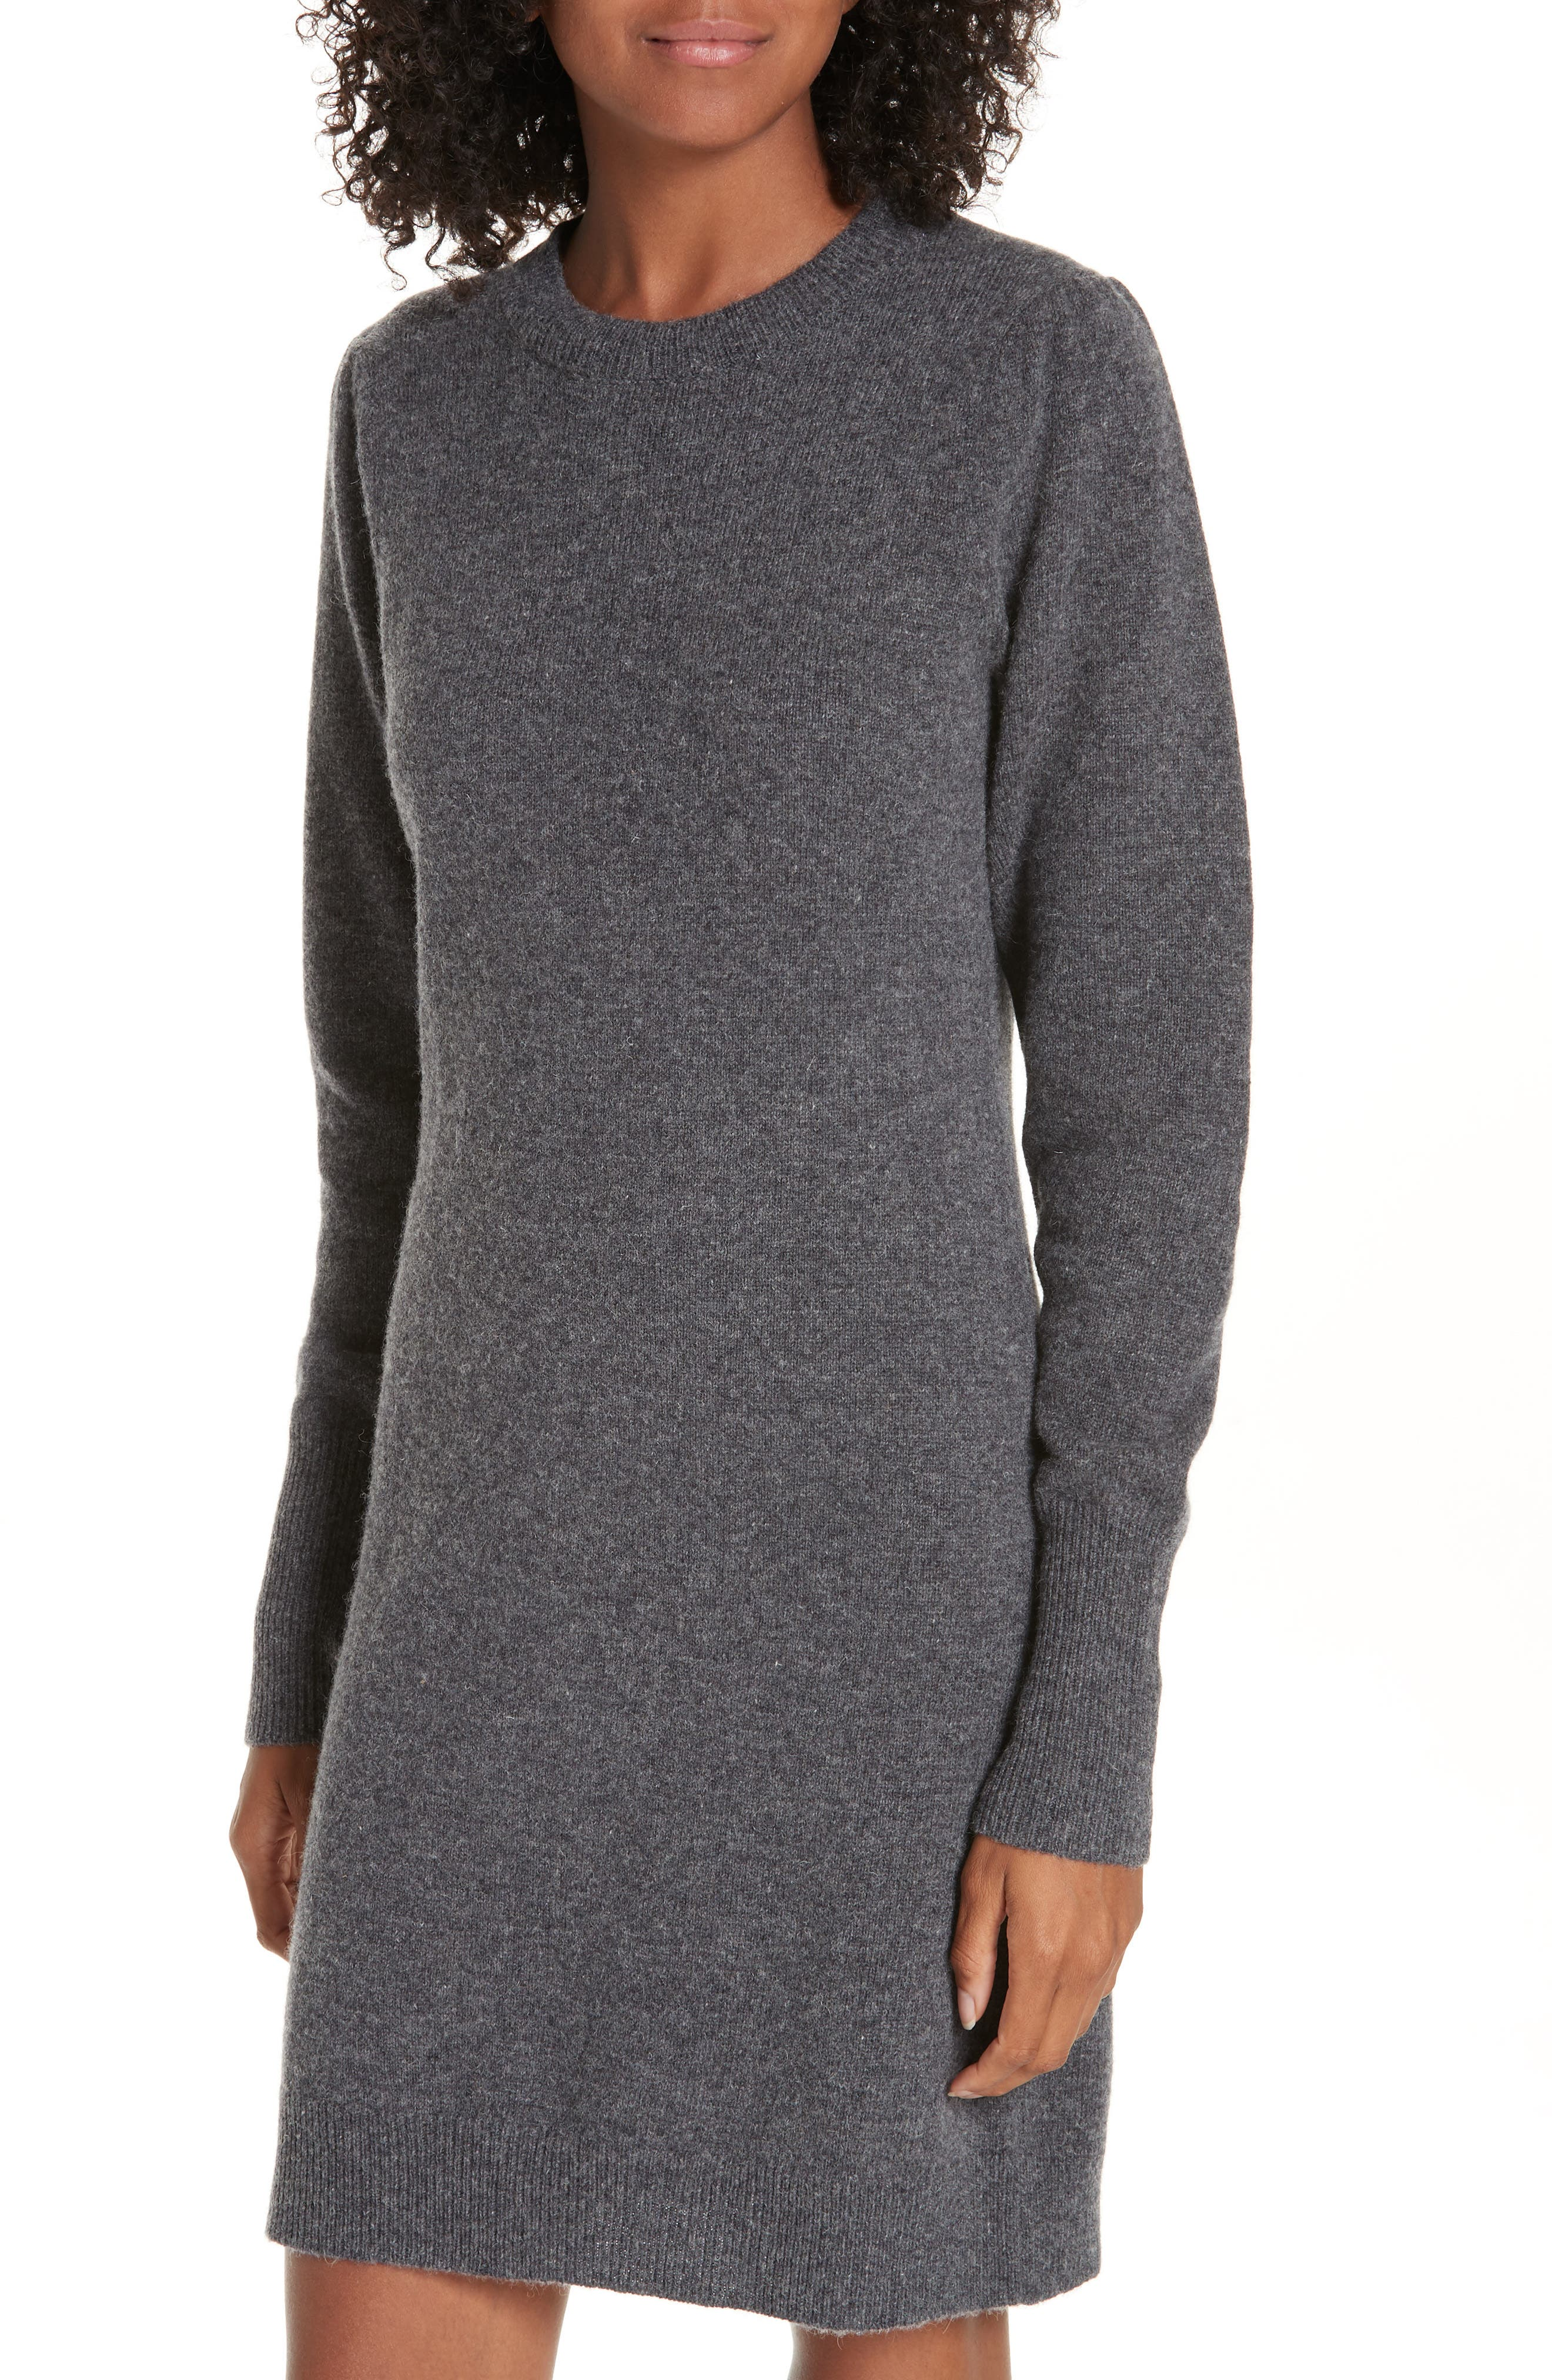 Ancolie Eyelet Collar Sweater Dress,                             Alternate thumbnail 4, color,                             020